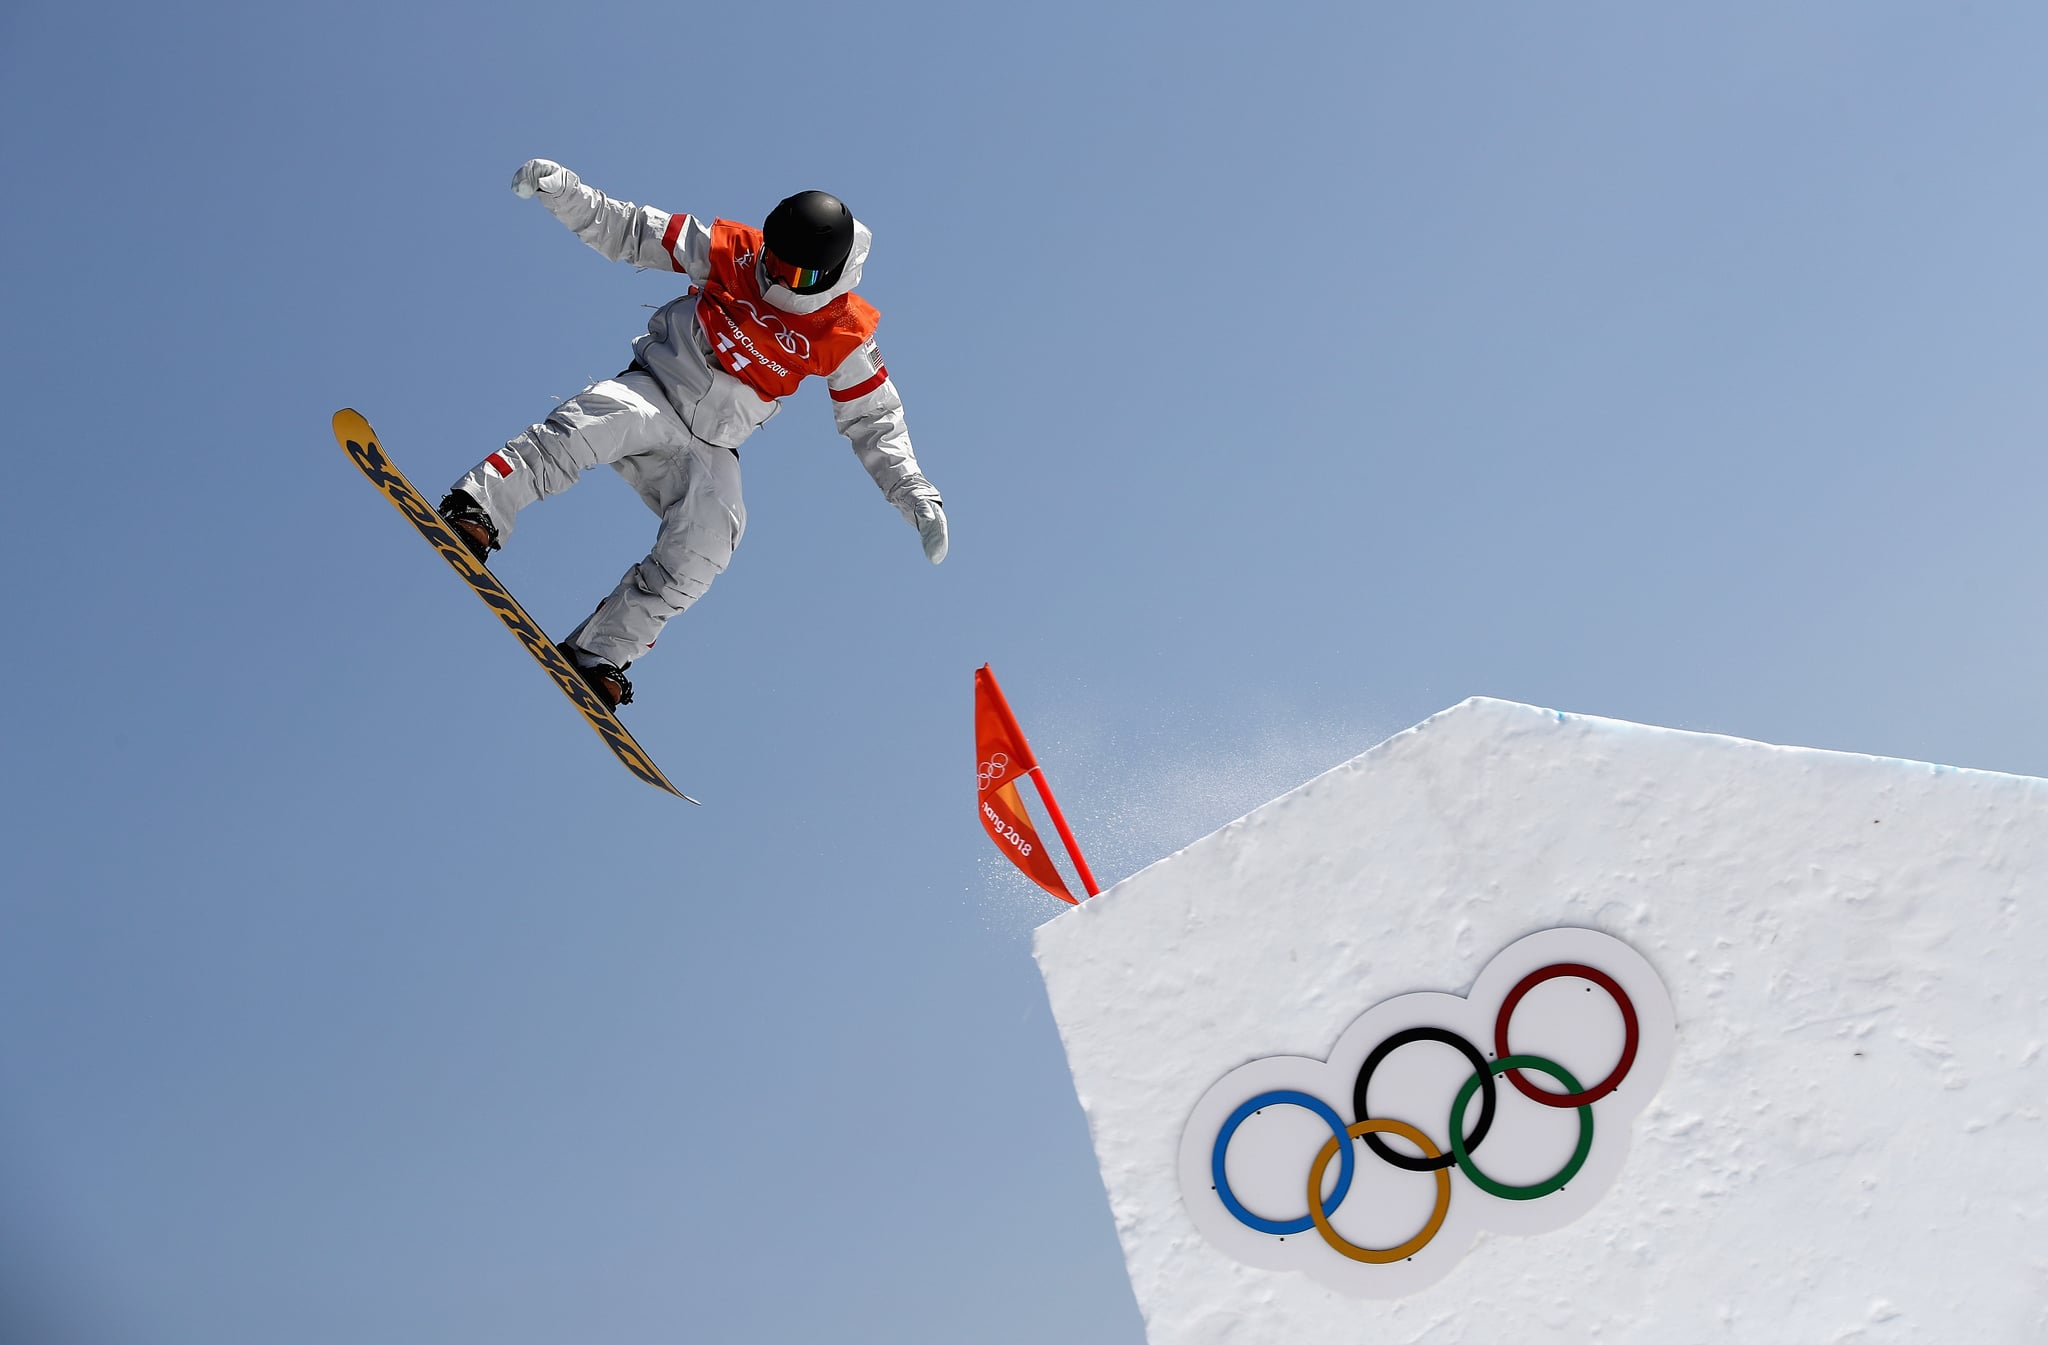 Canadian wins gold medal as men's big air makes Olympic debut